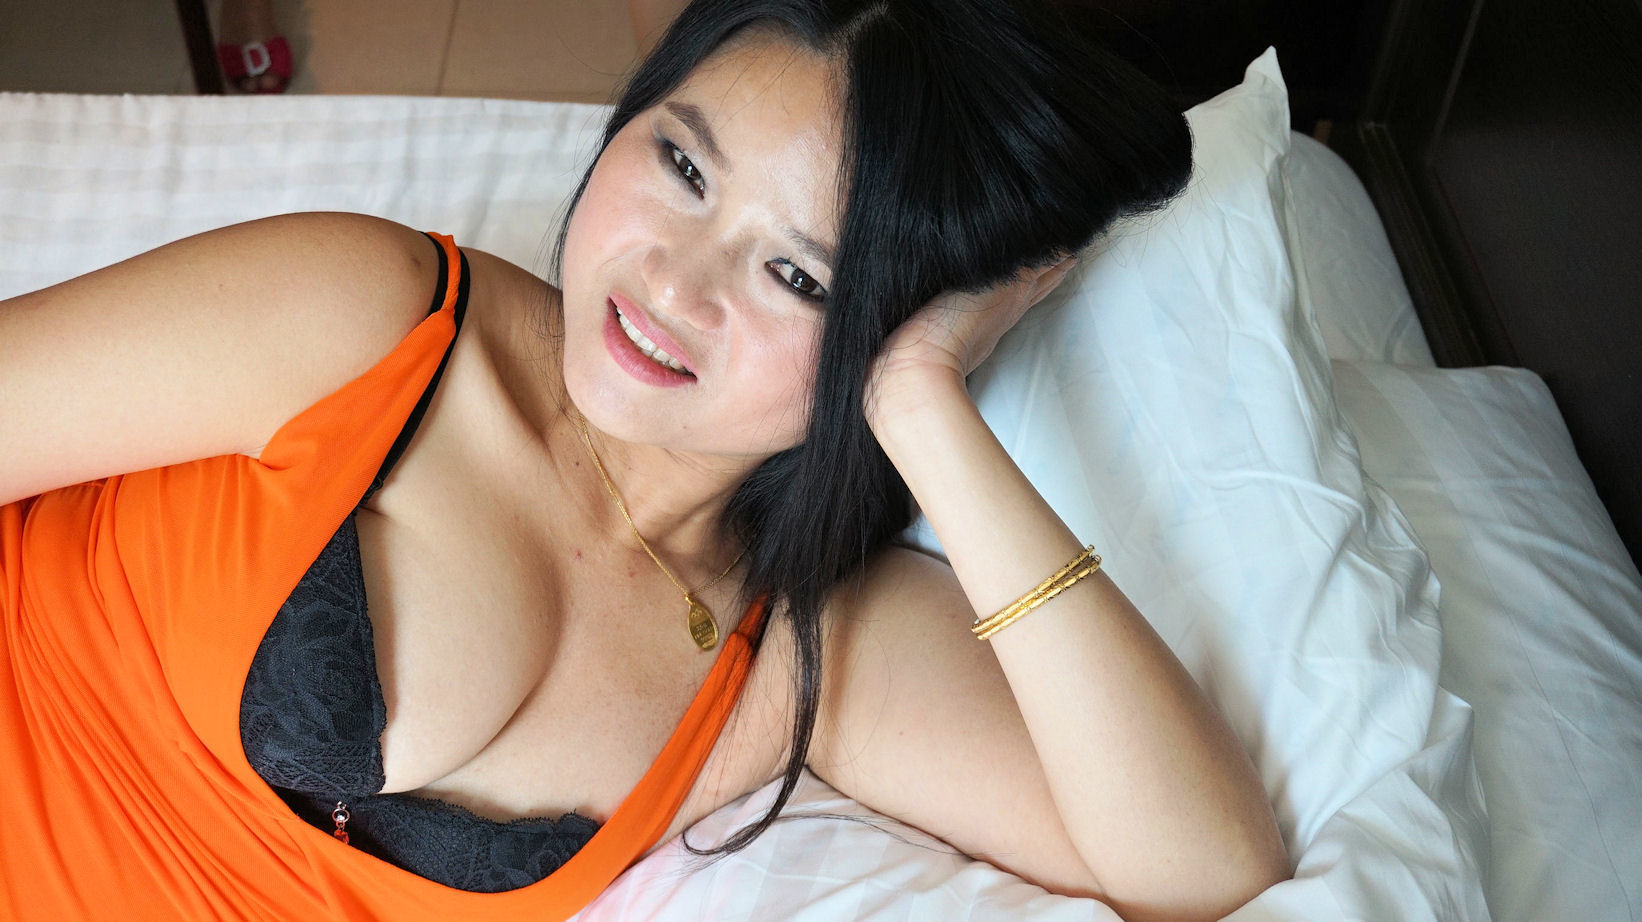 escort pl naughty thai massage